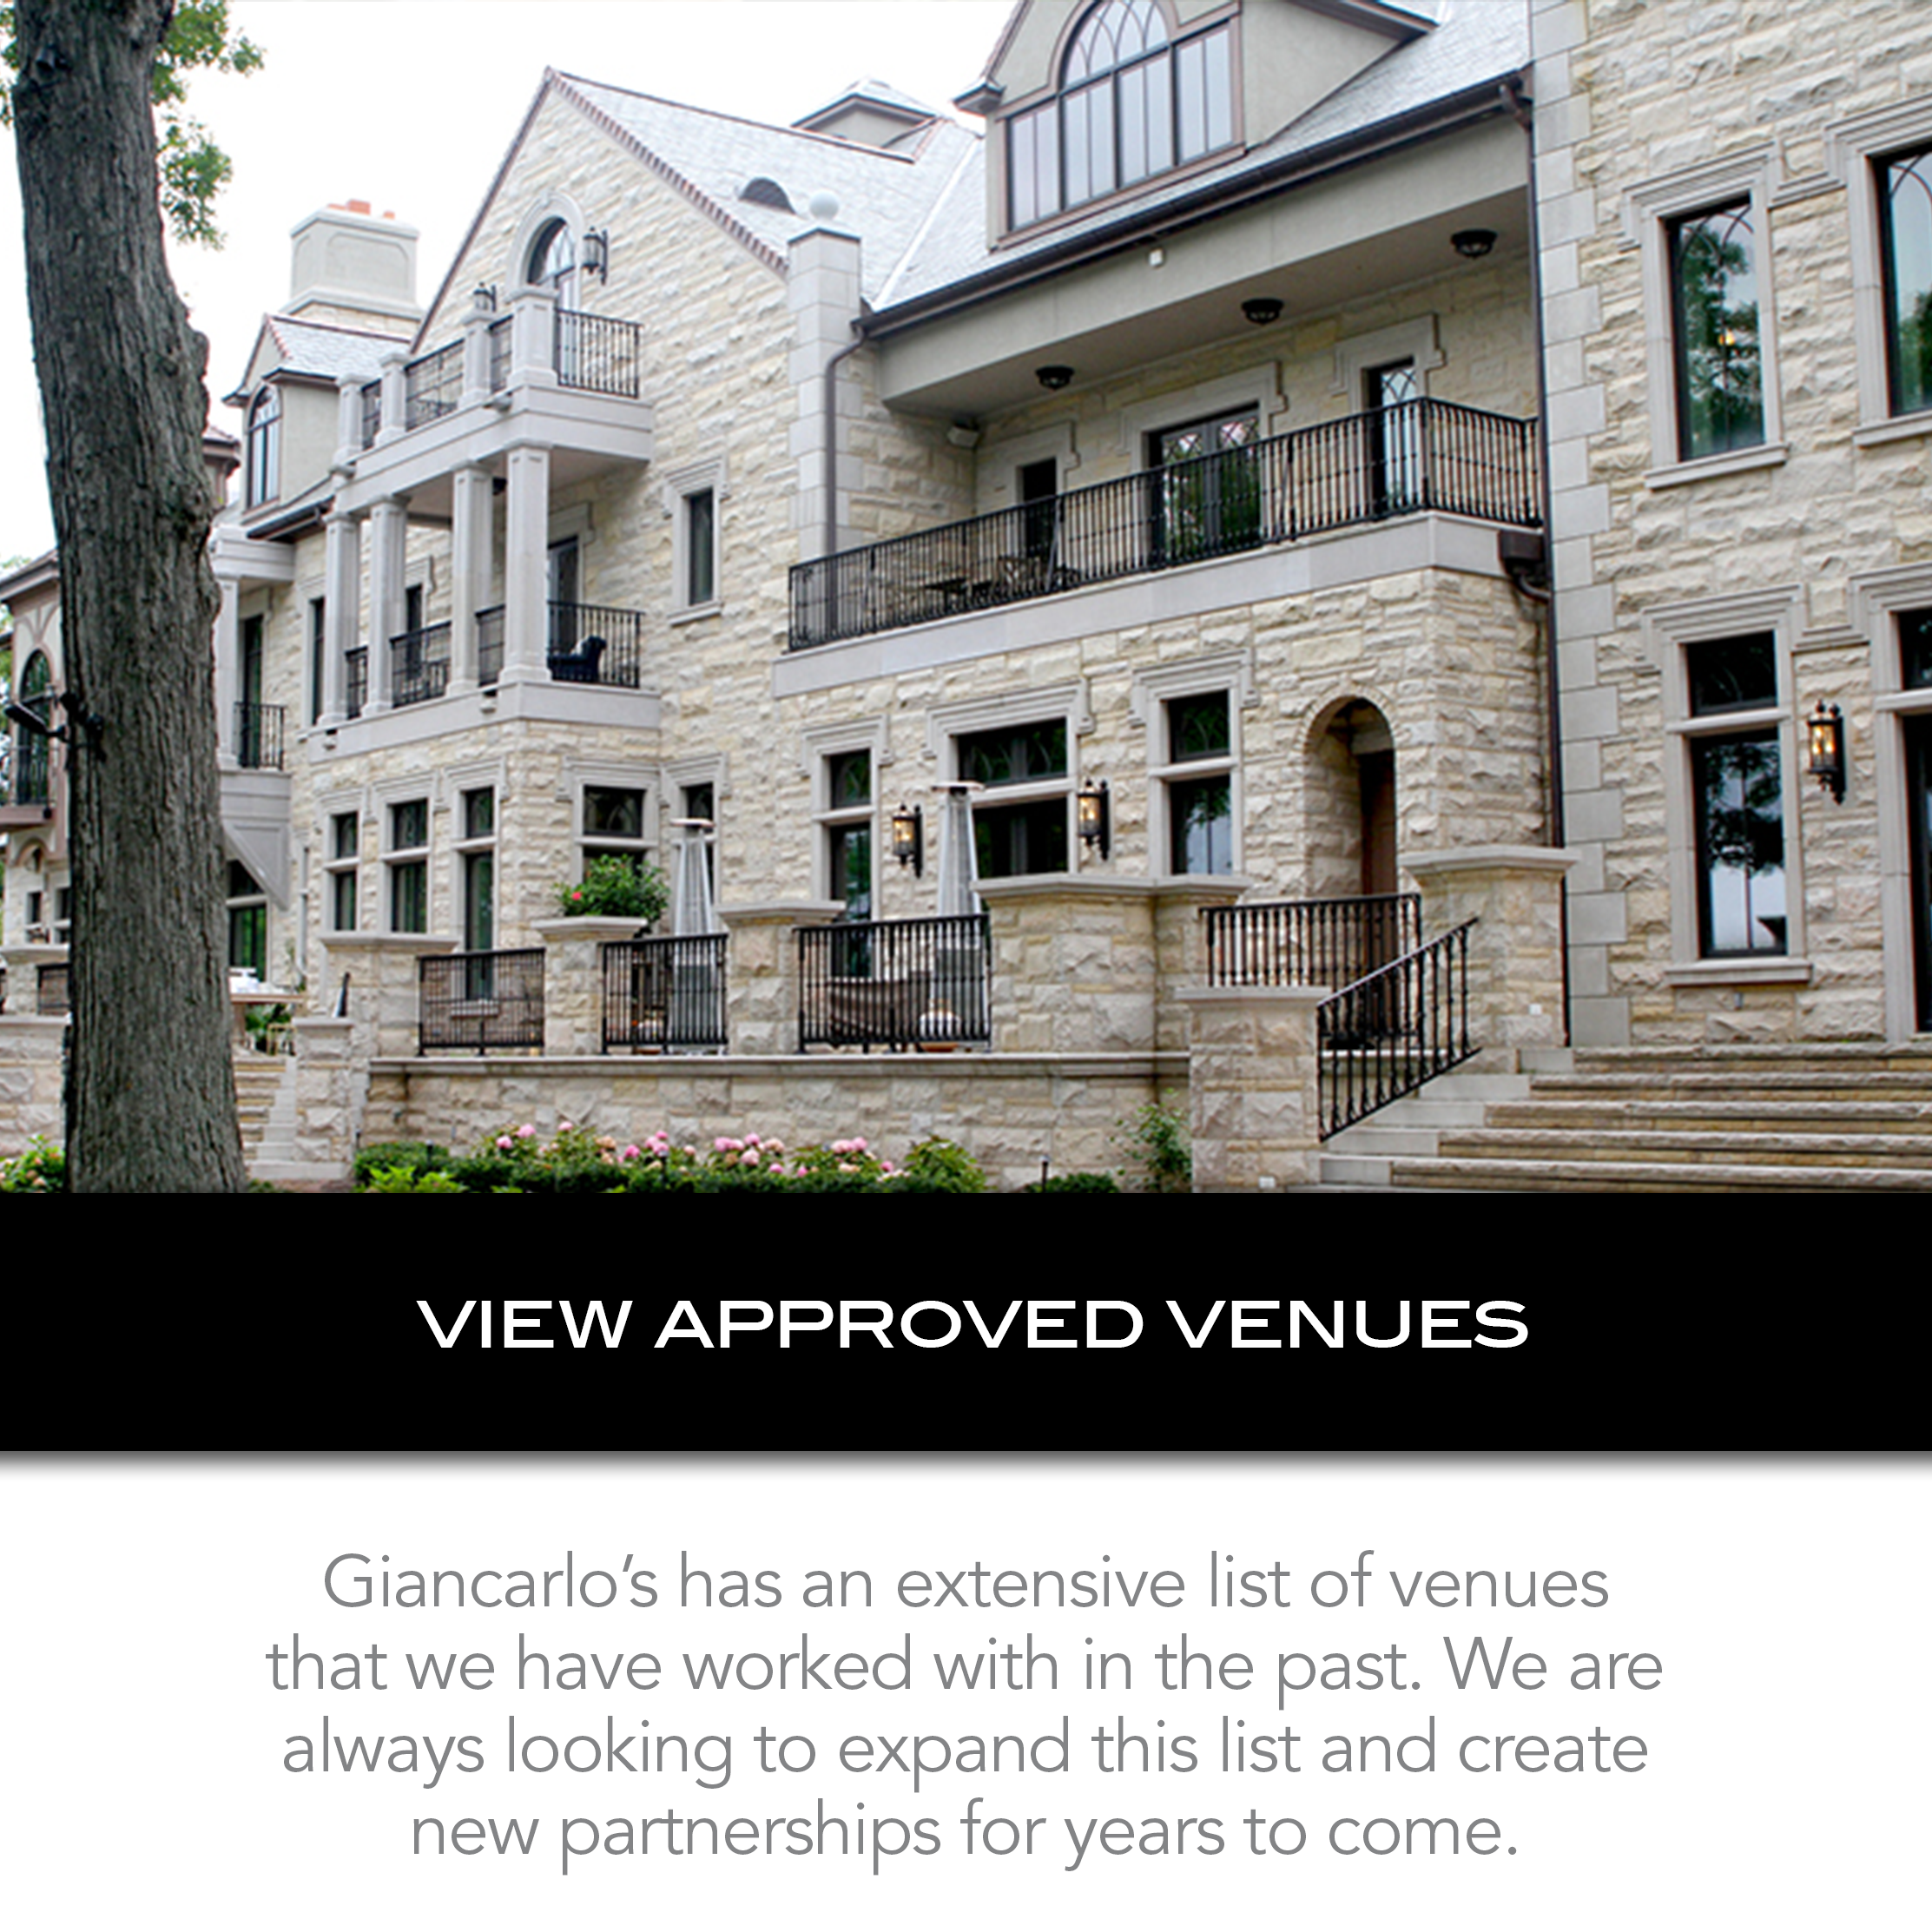 view approved venues